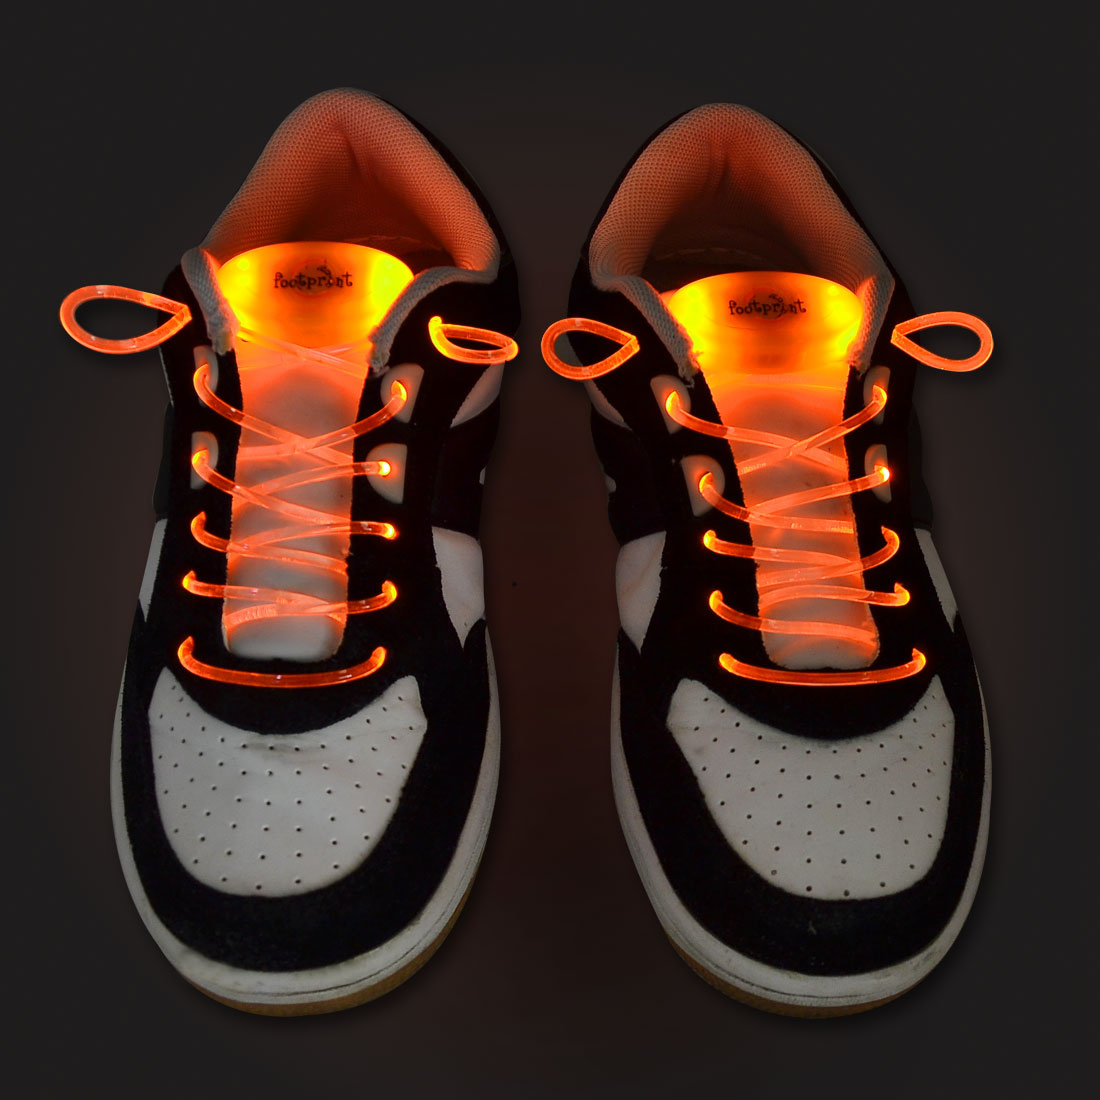 2-Pcs-KTV-Bar-Orange-3-Mode-LED-Light-Up-Waterproof-Shoelaces-On-Strobe-Flashing